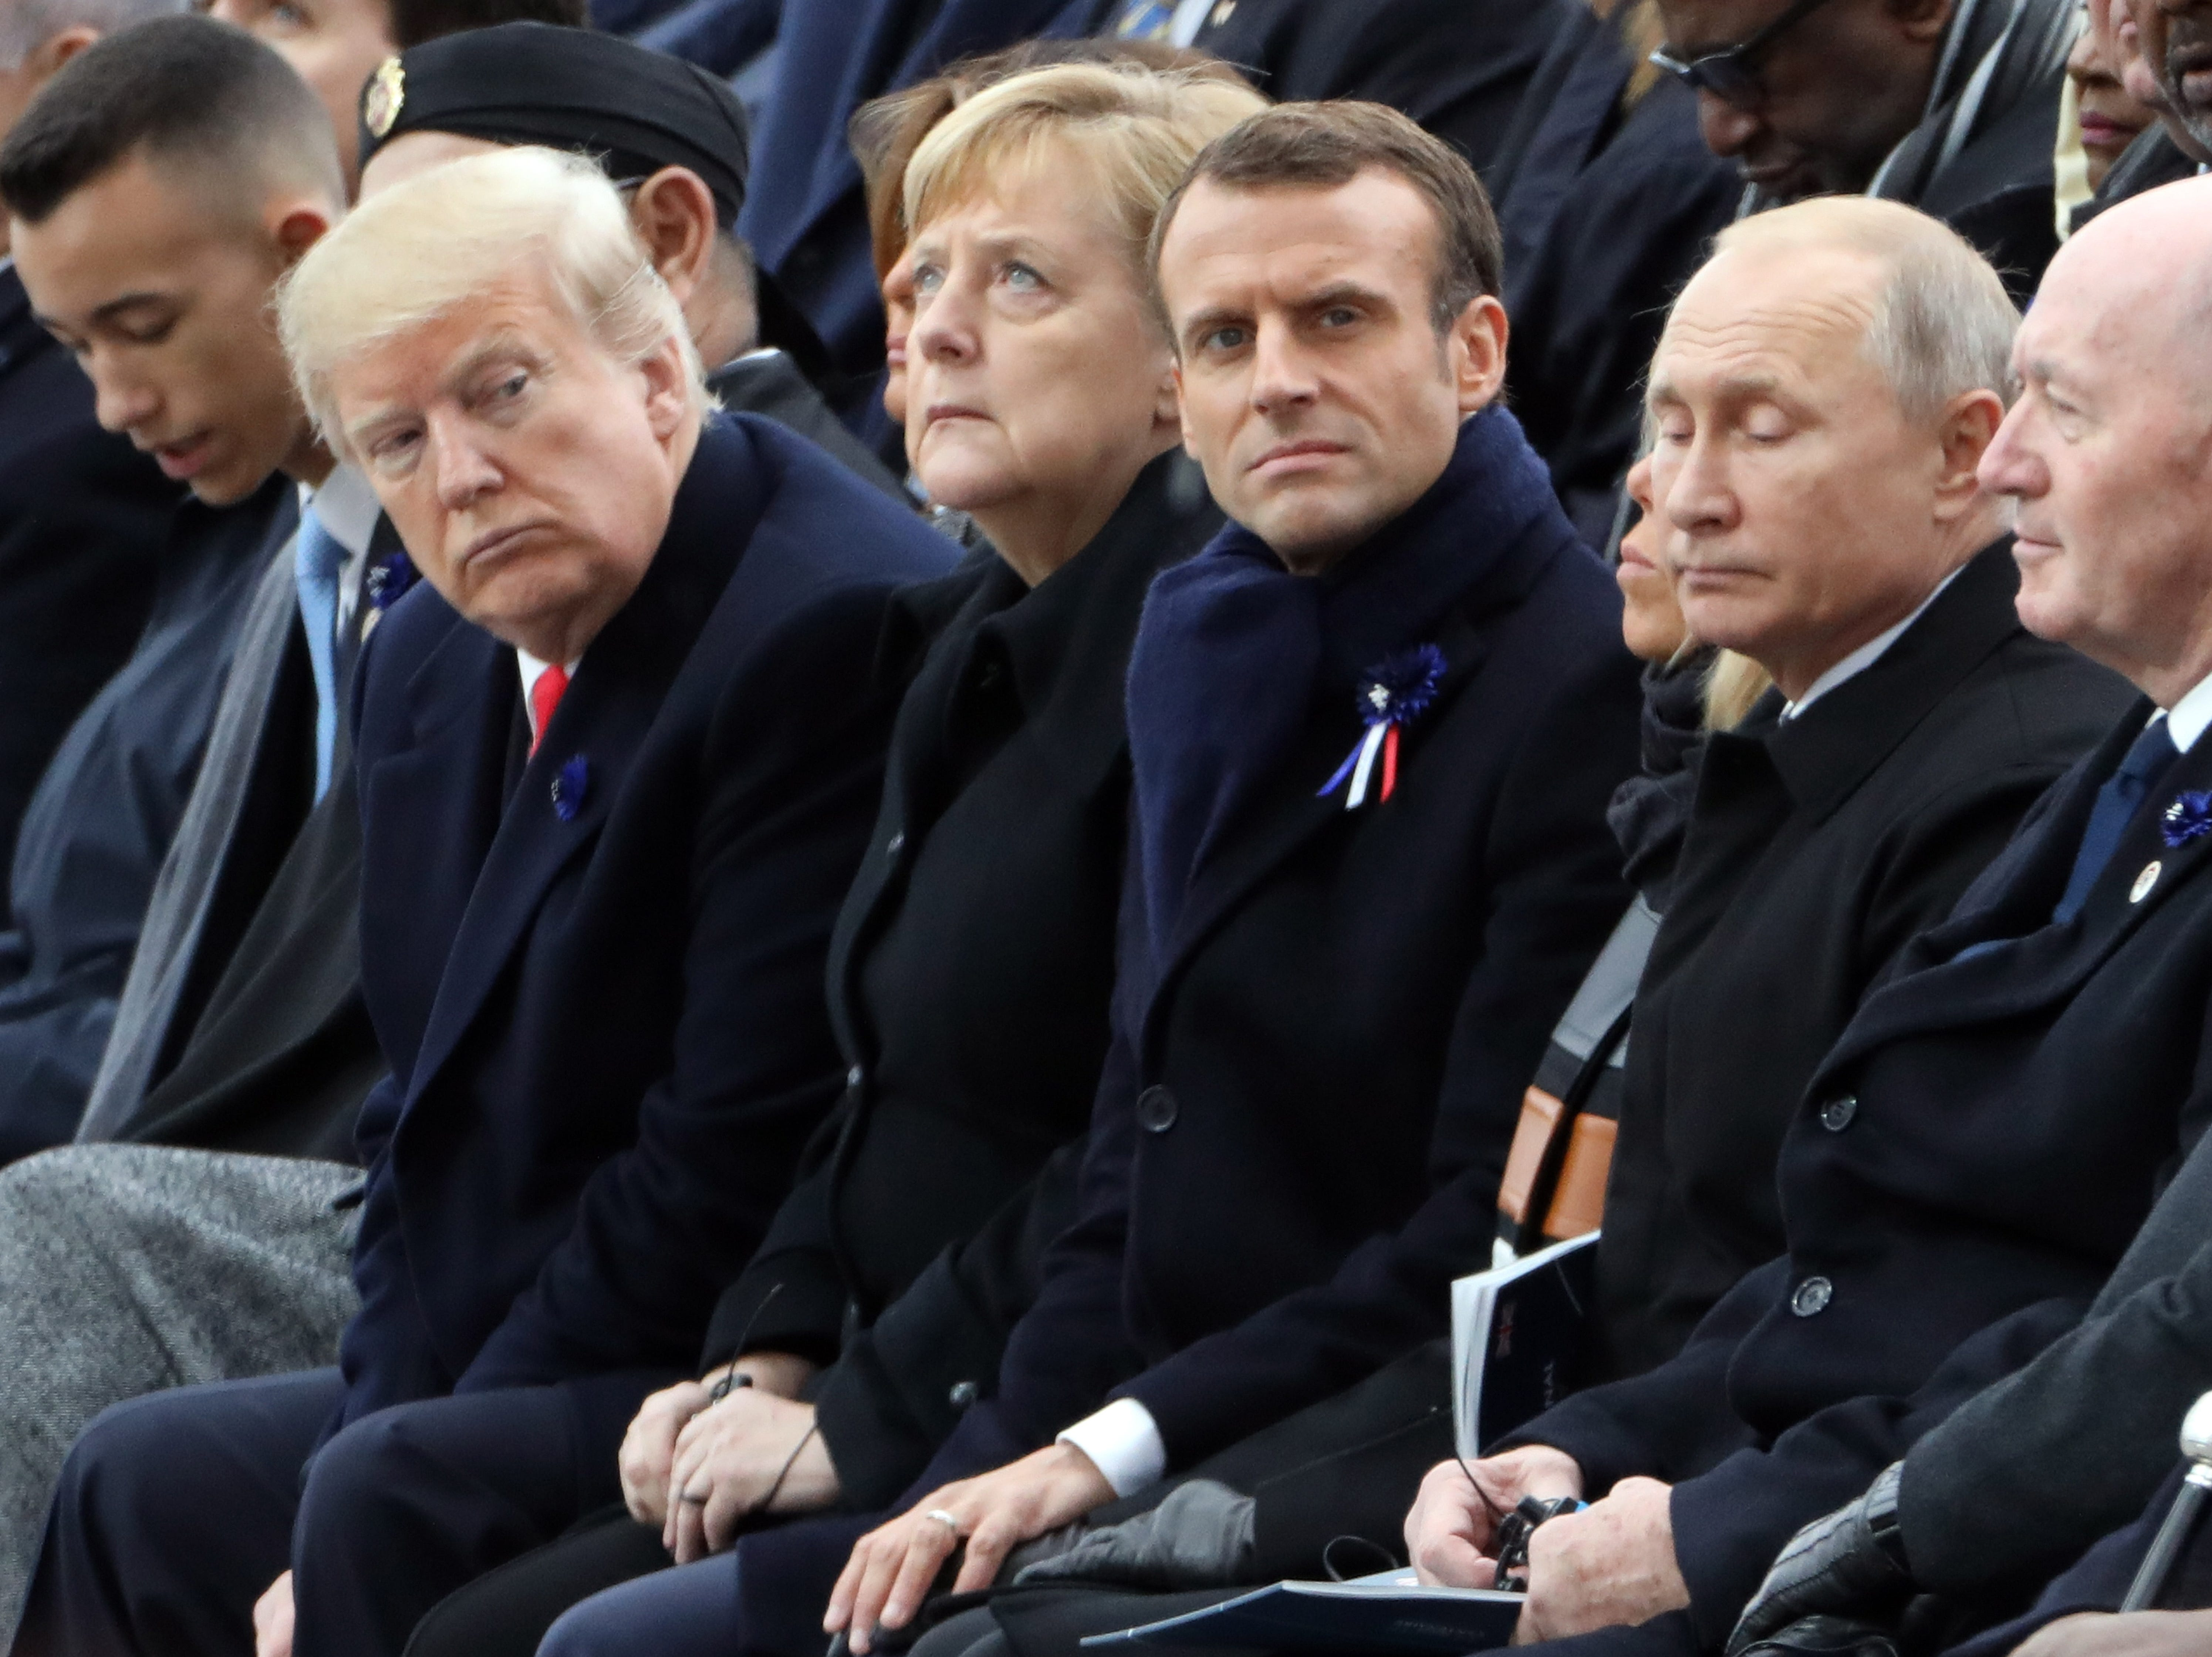 President Donald J. Trump looks toward   Russian President Vladimir Putin as the attend the international ceremony for the Centenary of the WWI Armistice of Nov. 11, 1918 at the Arc de Triomphe, in Paris, France on Nov. 11, 2018. Heads of State and Government commemorate their fallen soldiers in France.